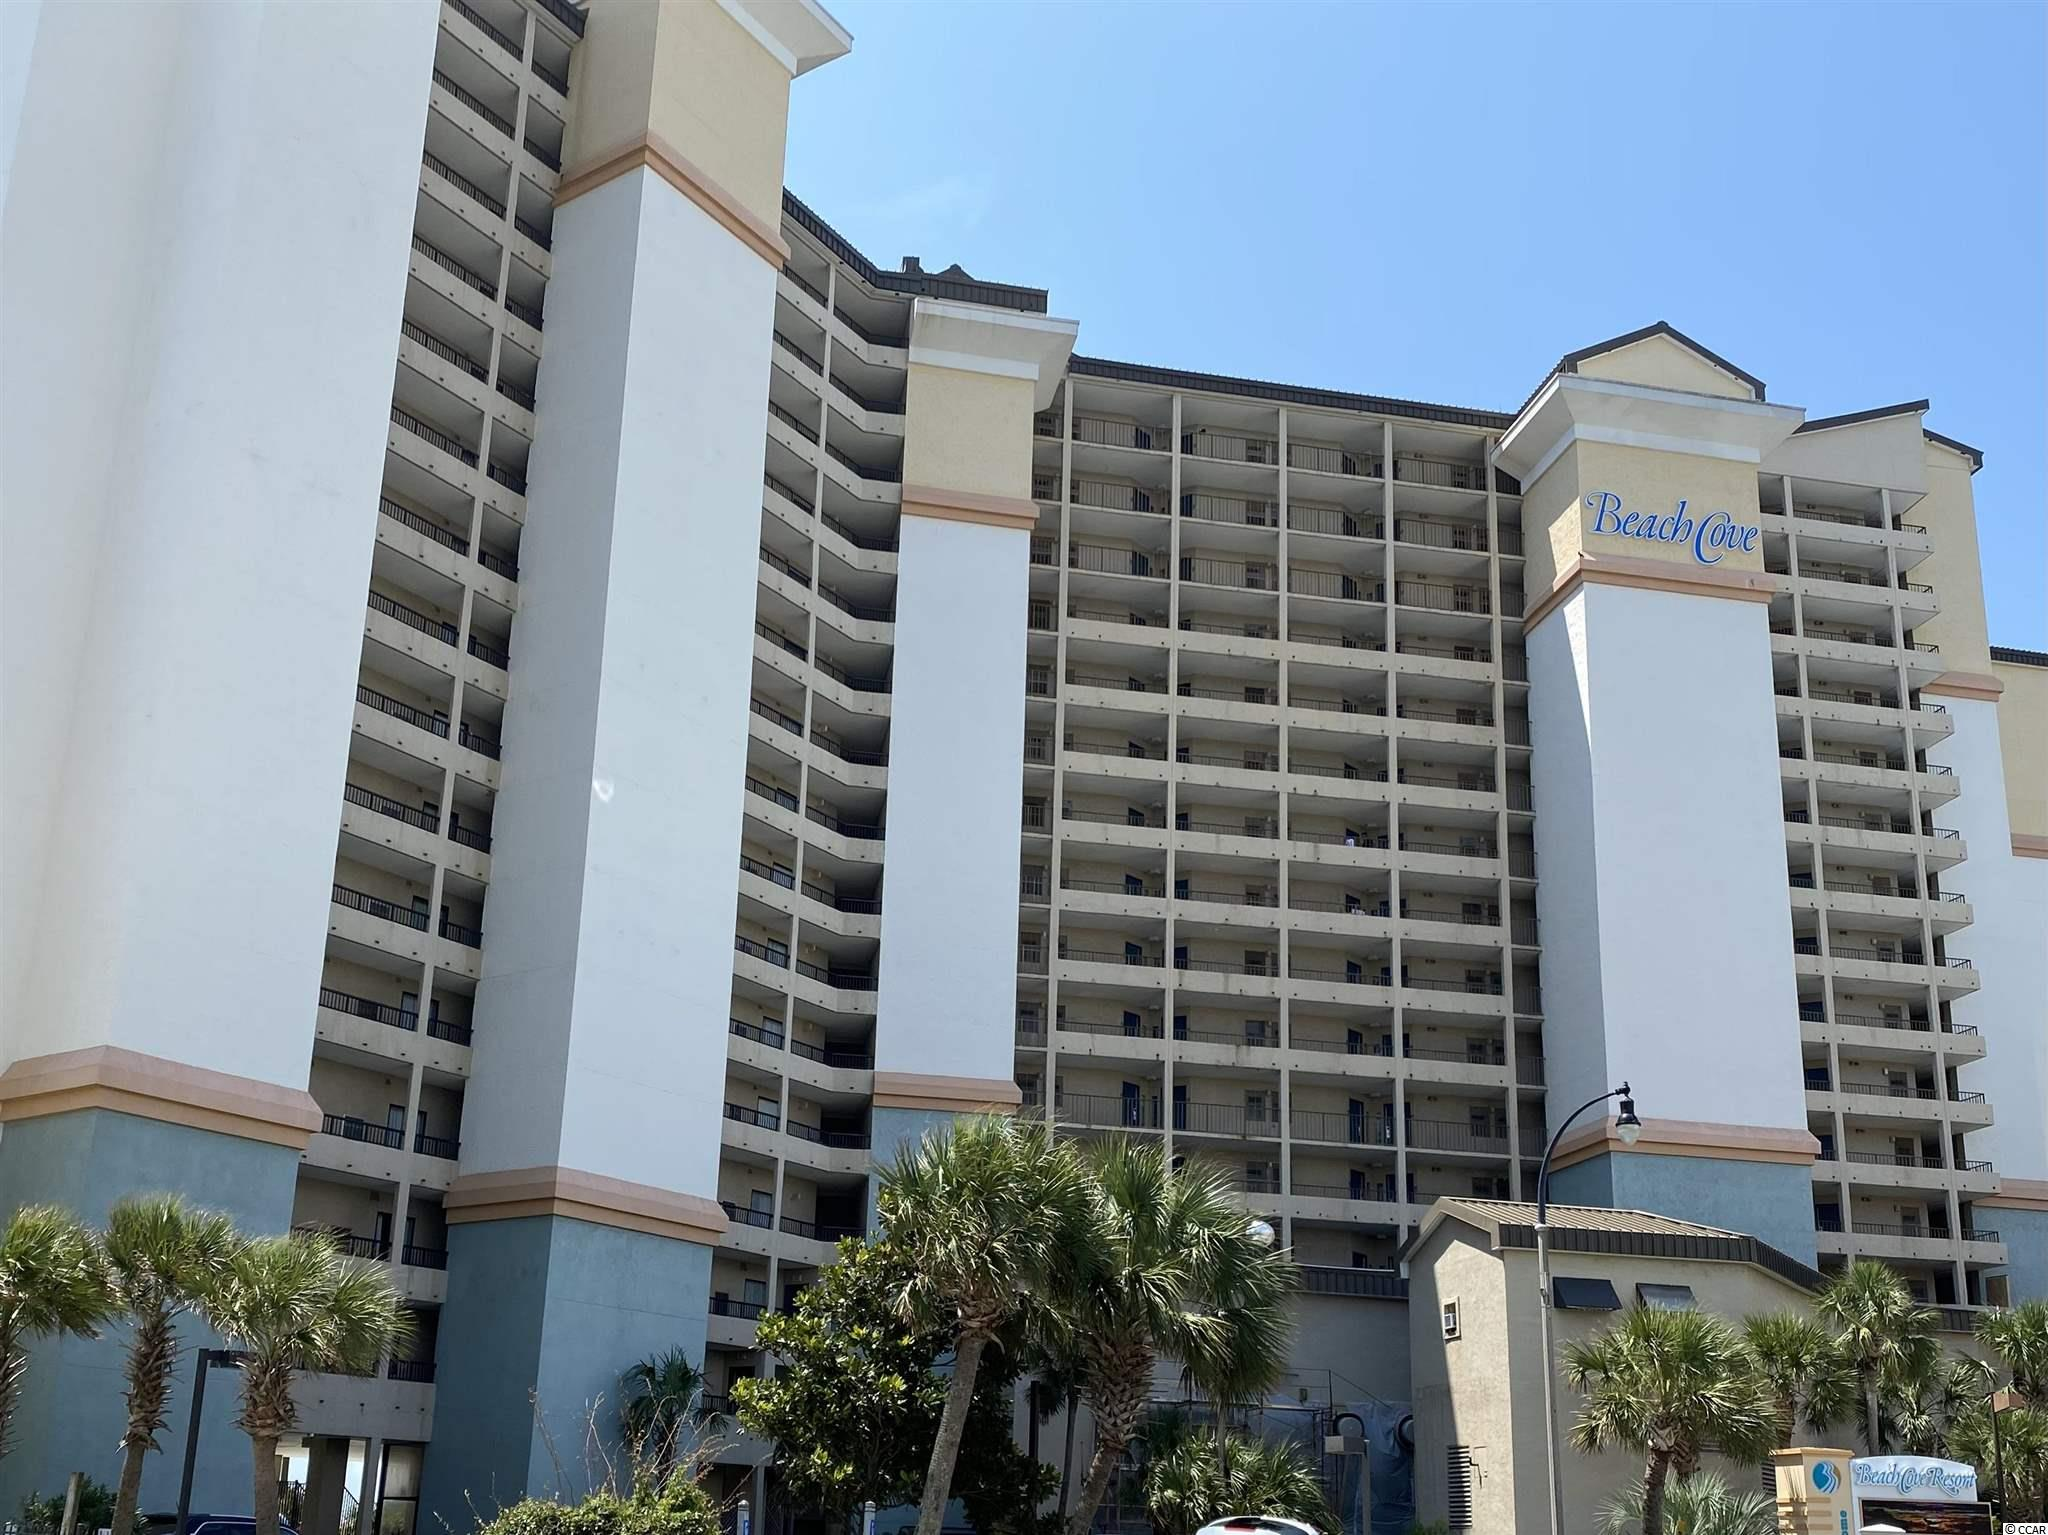 Excellent opportunity in a fully upgraded unit on the 3rd floor. This is the only floor with no step down from hall to living area and you can park on the 3rd level and come straight in without going through lobby and taking elevator. This is one of the best units available and you won't want to miss it. So many amenities at Beach Cove... exercise room, indoor and 3 outdoor pools, 350ft lazy river, arcade area, bar and snack area, restaurant, racketball court and more.